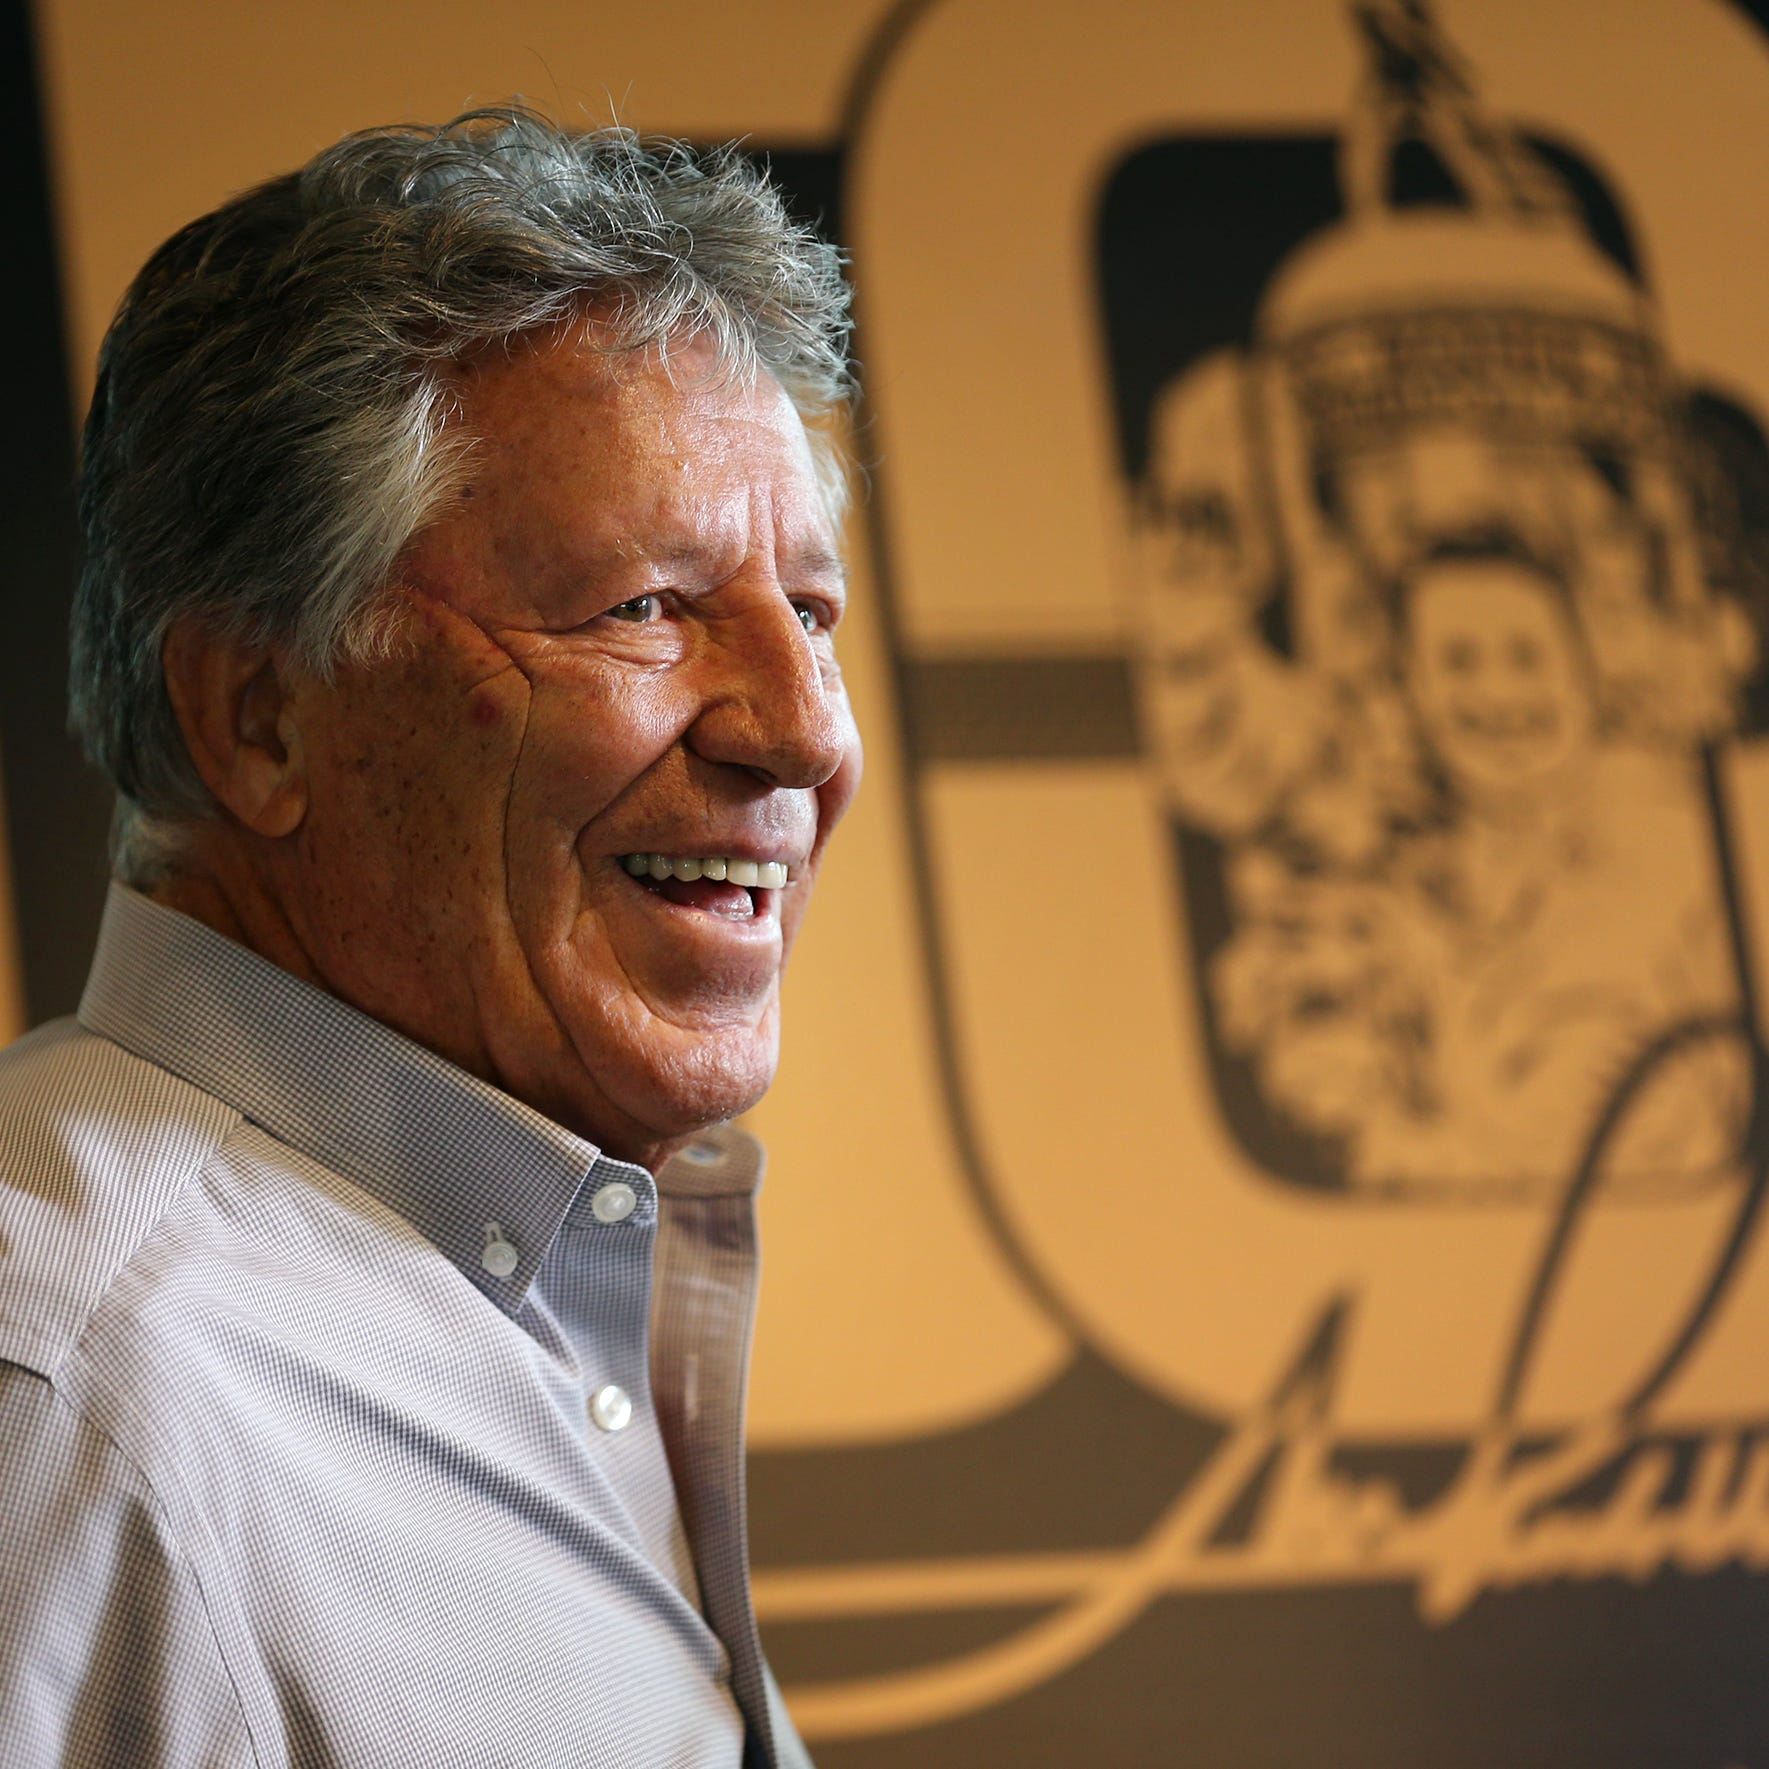 Mario Andretti says no to guaranteed spots at Indy 500: 'You don't meddle with tradition'